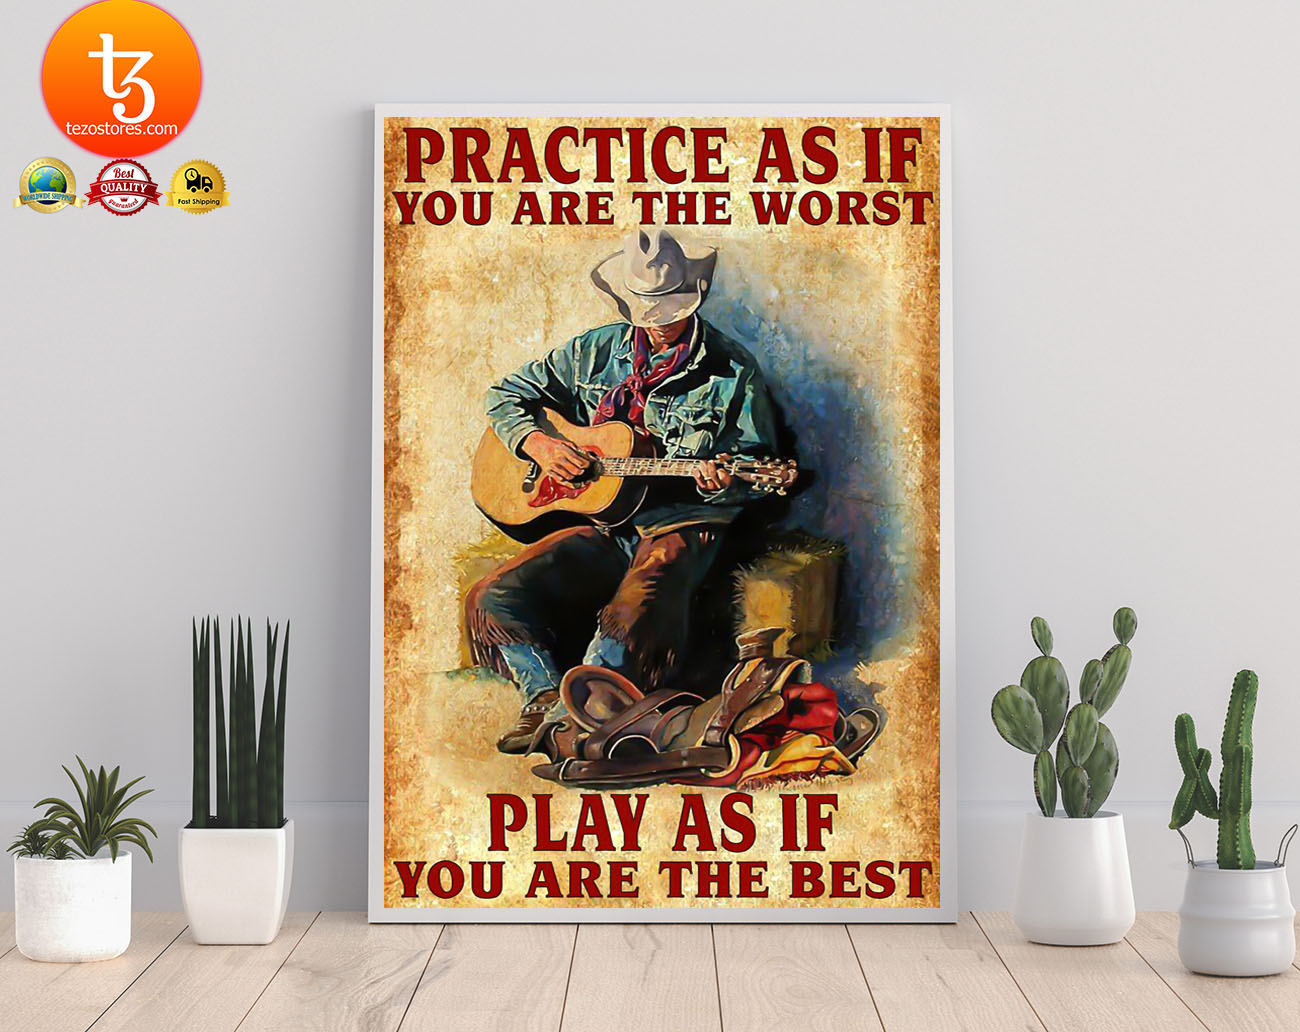 Guitar Practice as if you are the worst play as if you are the best poster 3